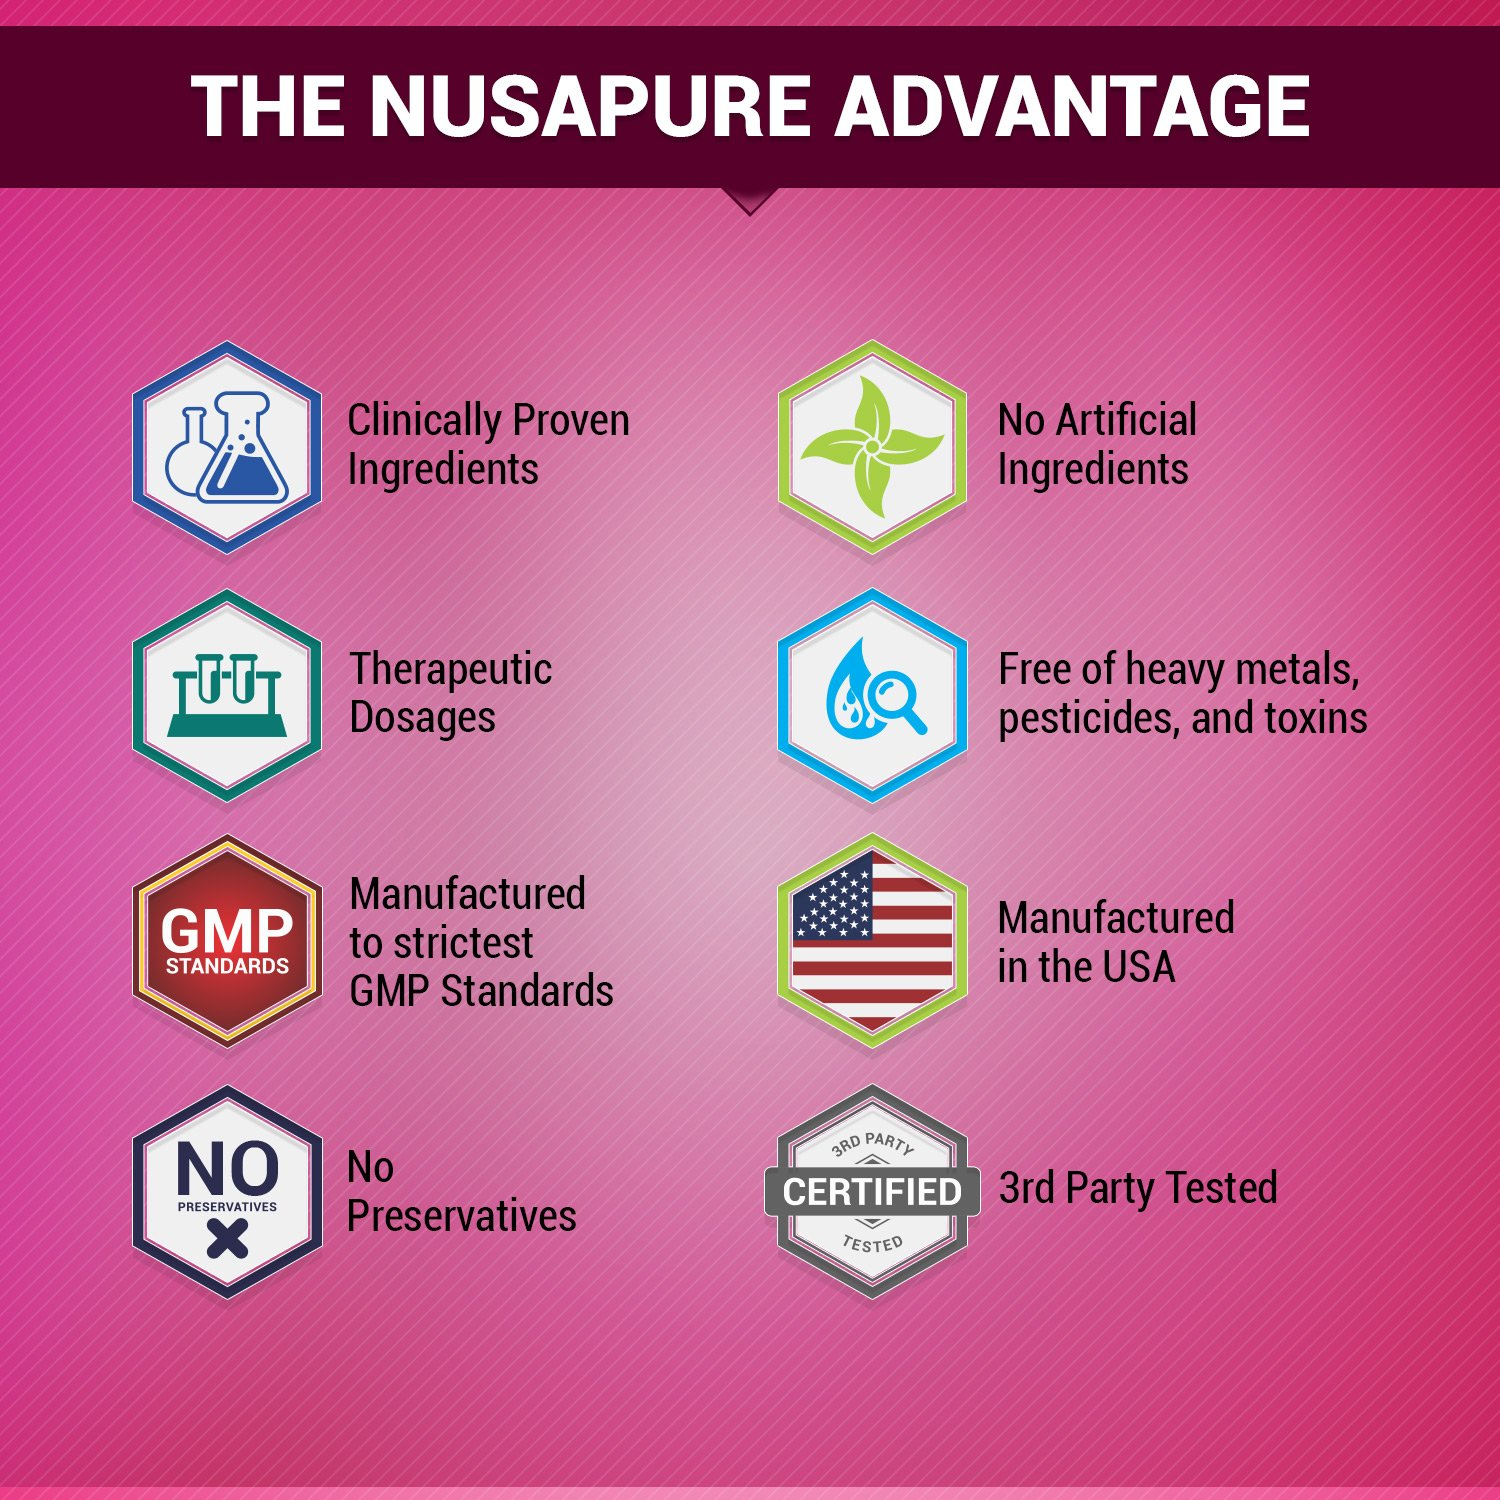 Best Resveratrol 1000mg 180caps (Non-GMO & Gluten Free) Promotes Heart Health and Balances Blood Pressure, Helps Balance Hormones - Proudly Made in USA - 100% Money Back Guarantee! by NusaPure (Image #5)